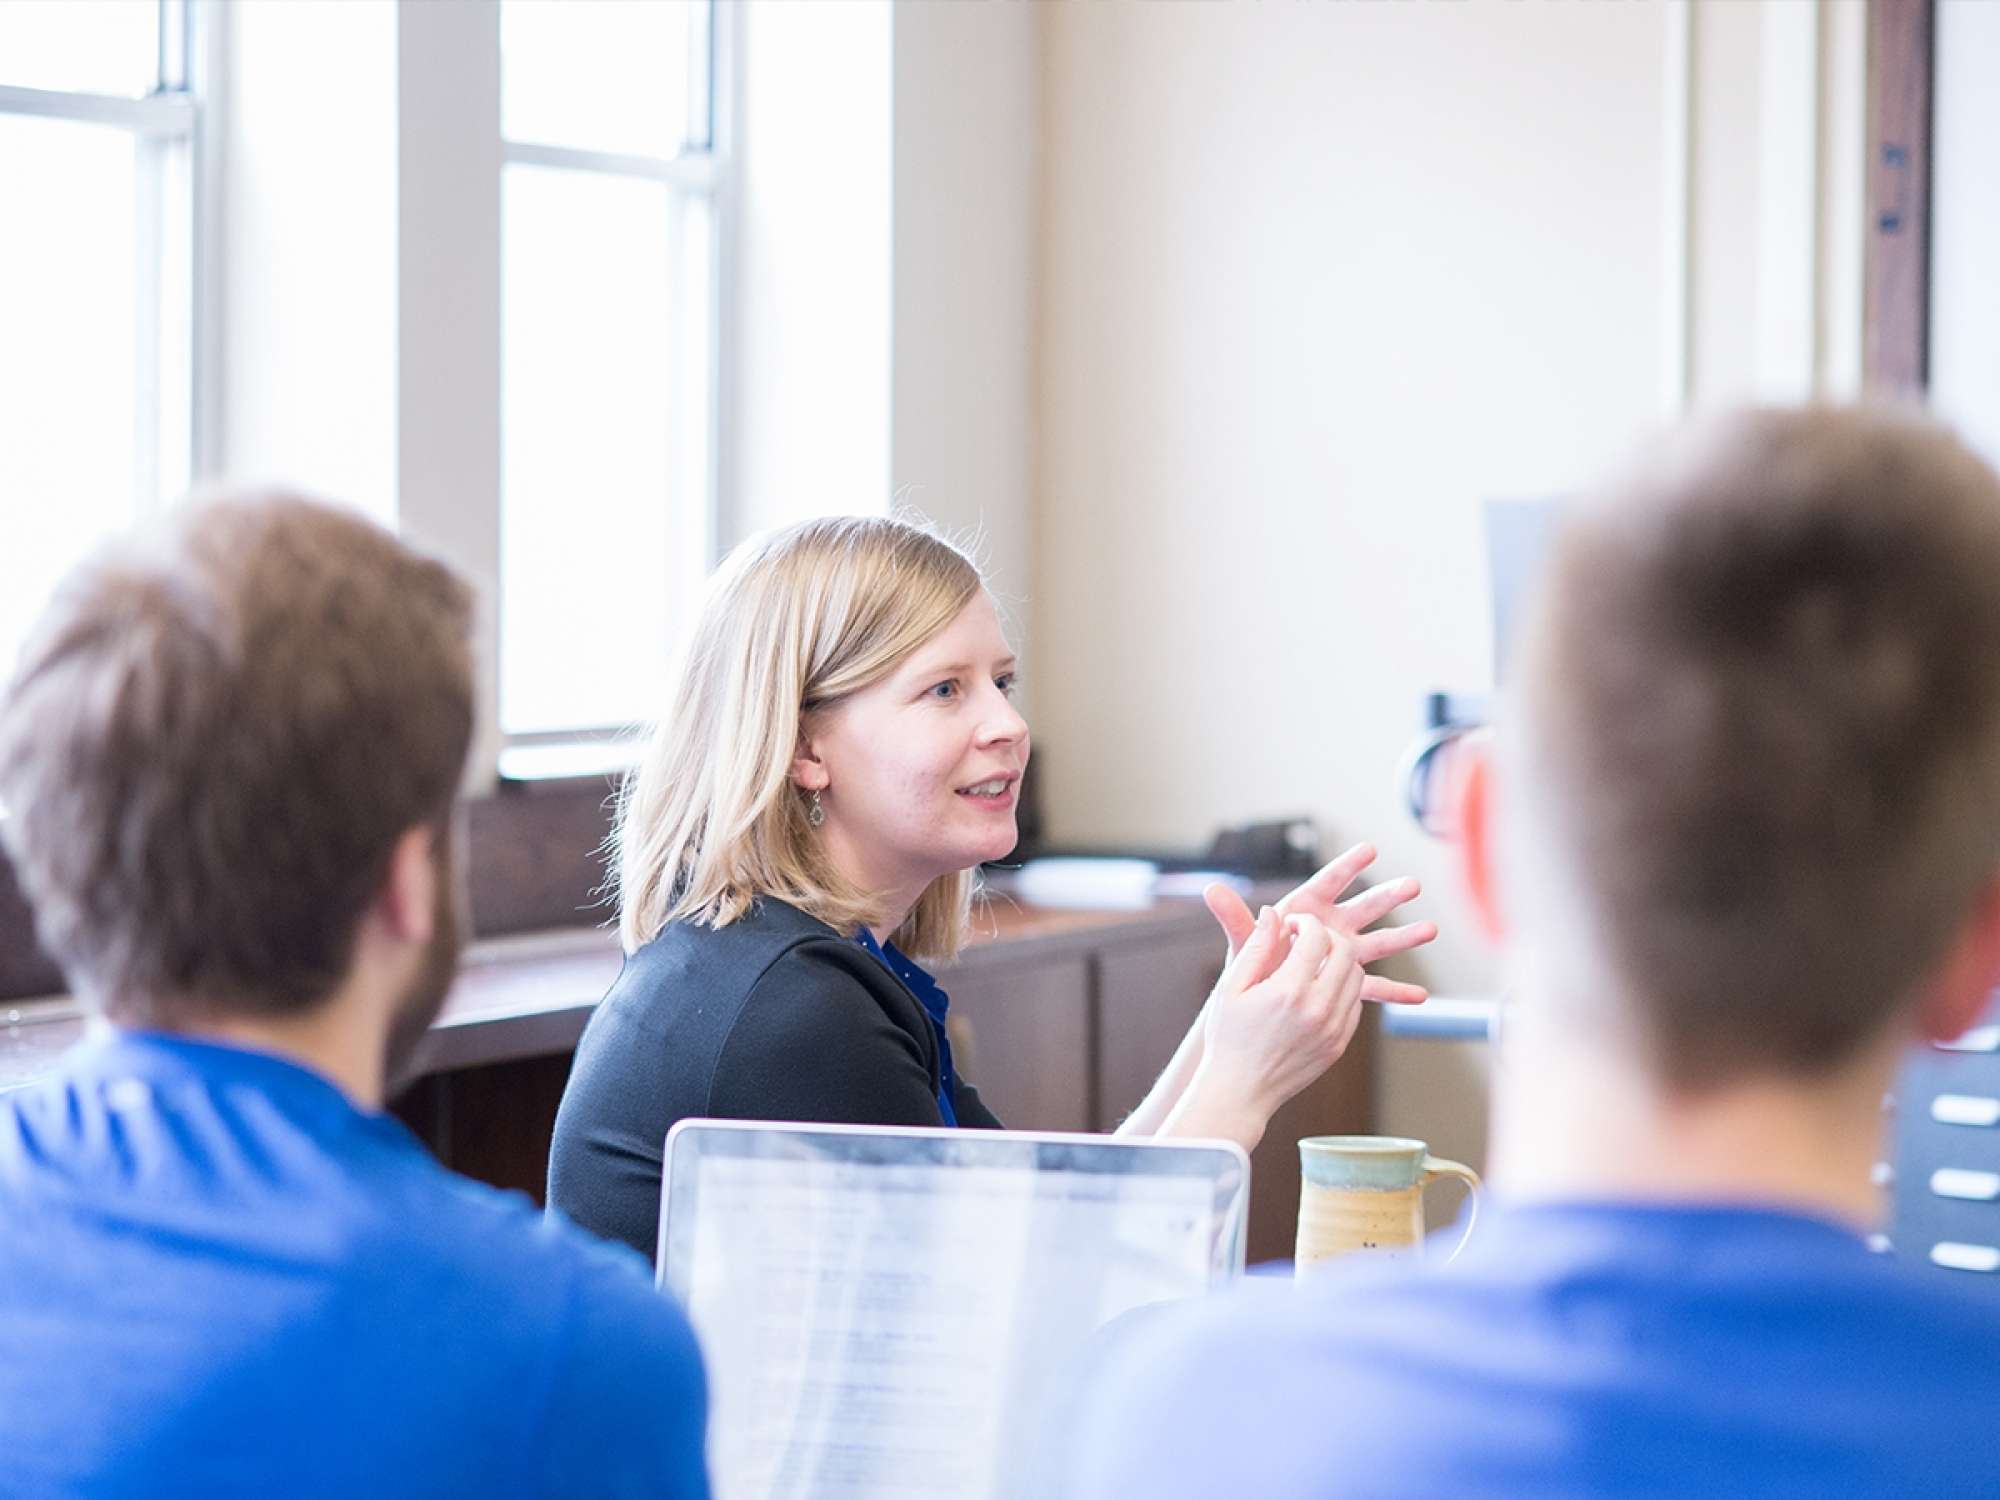 Professor talking to students